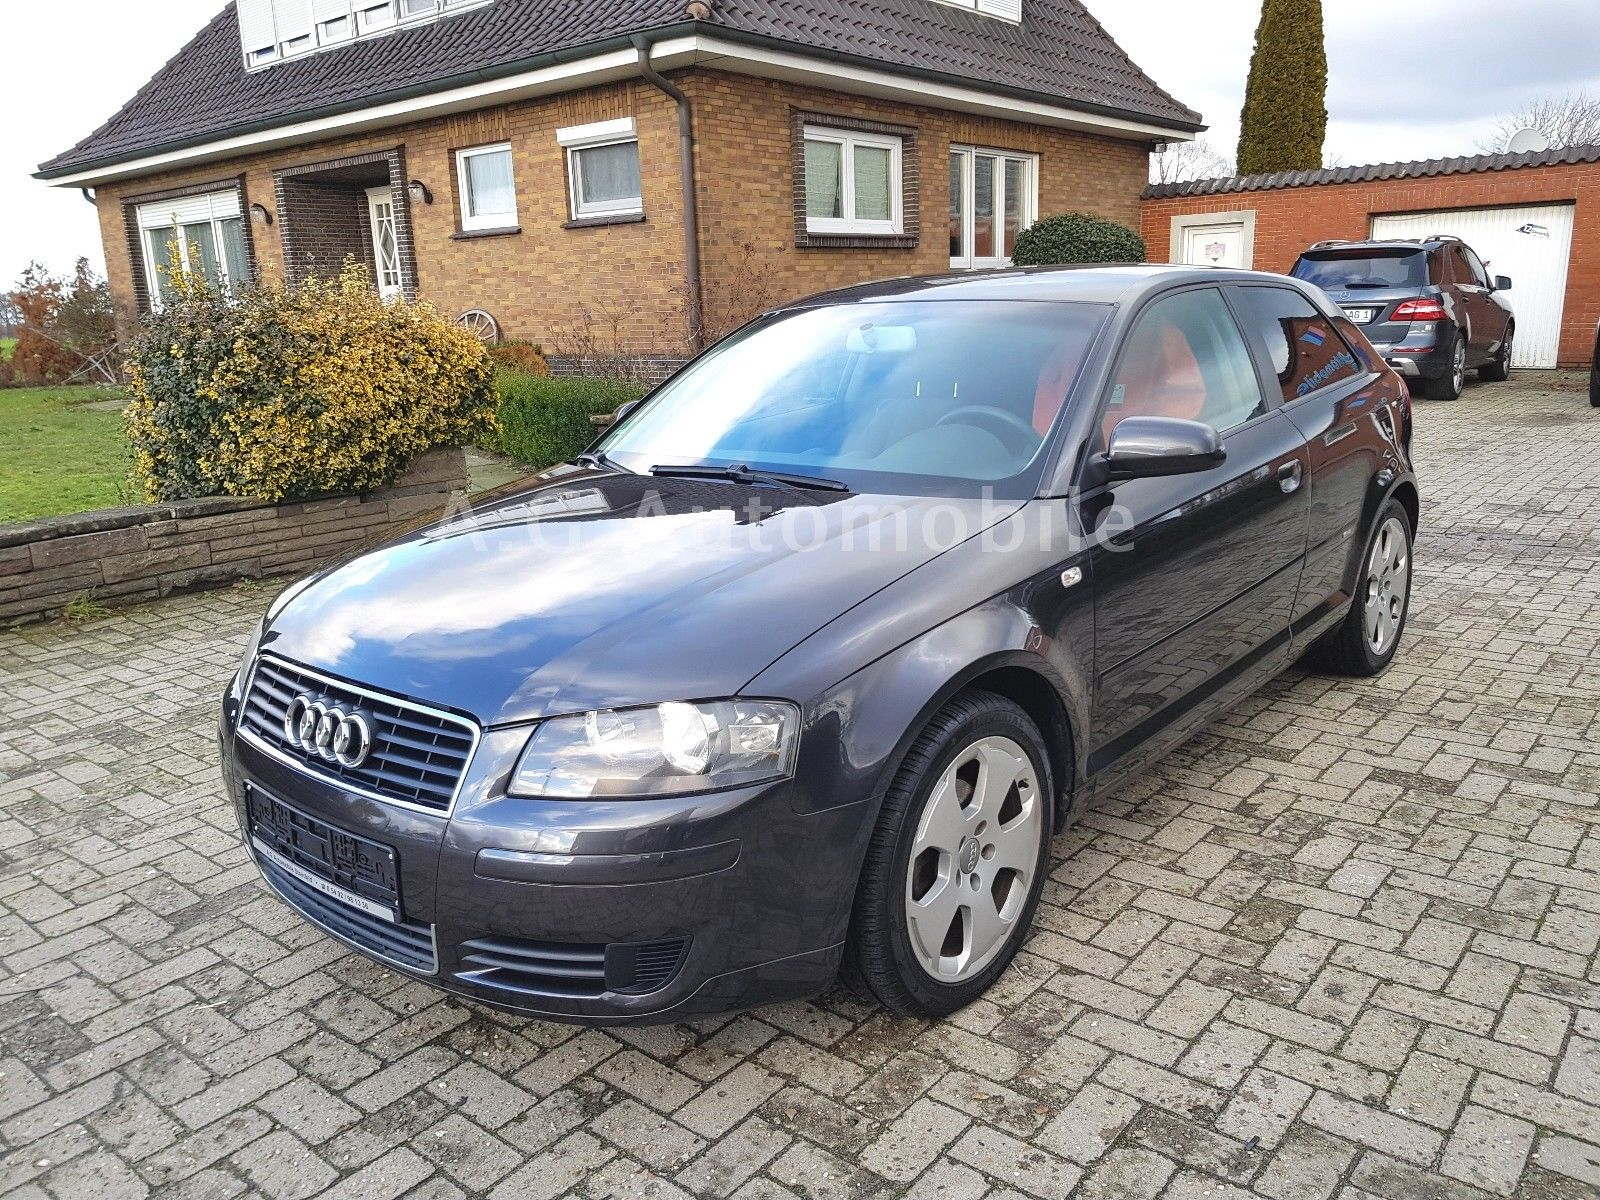 AUDI A3 2.0 TDI Attraction S Line